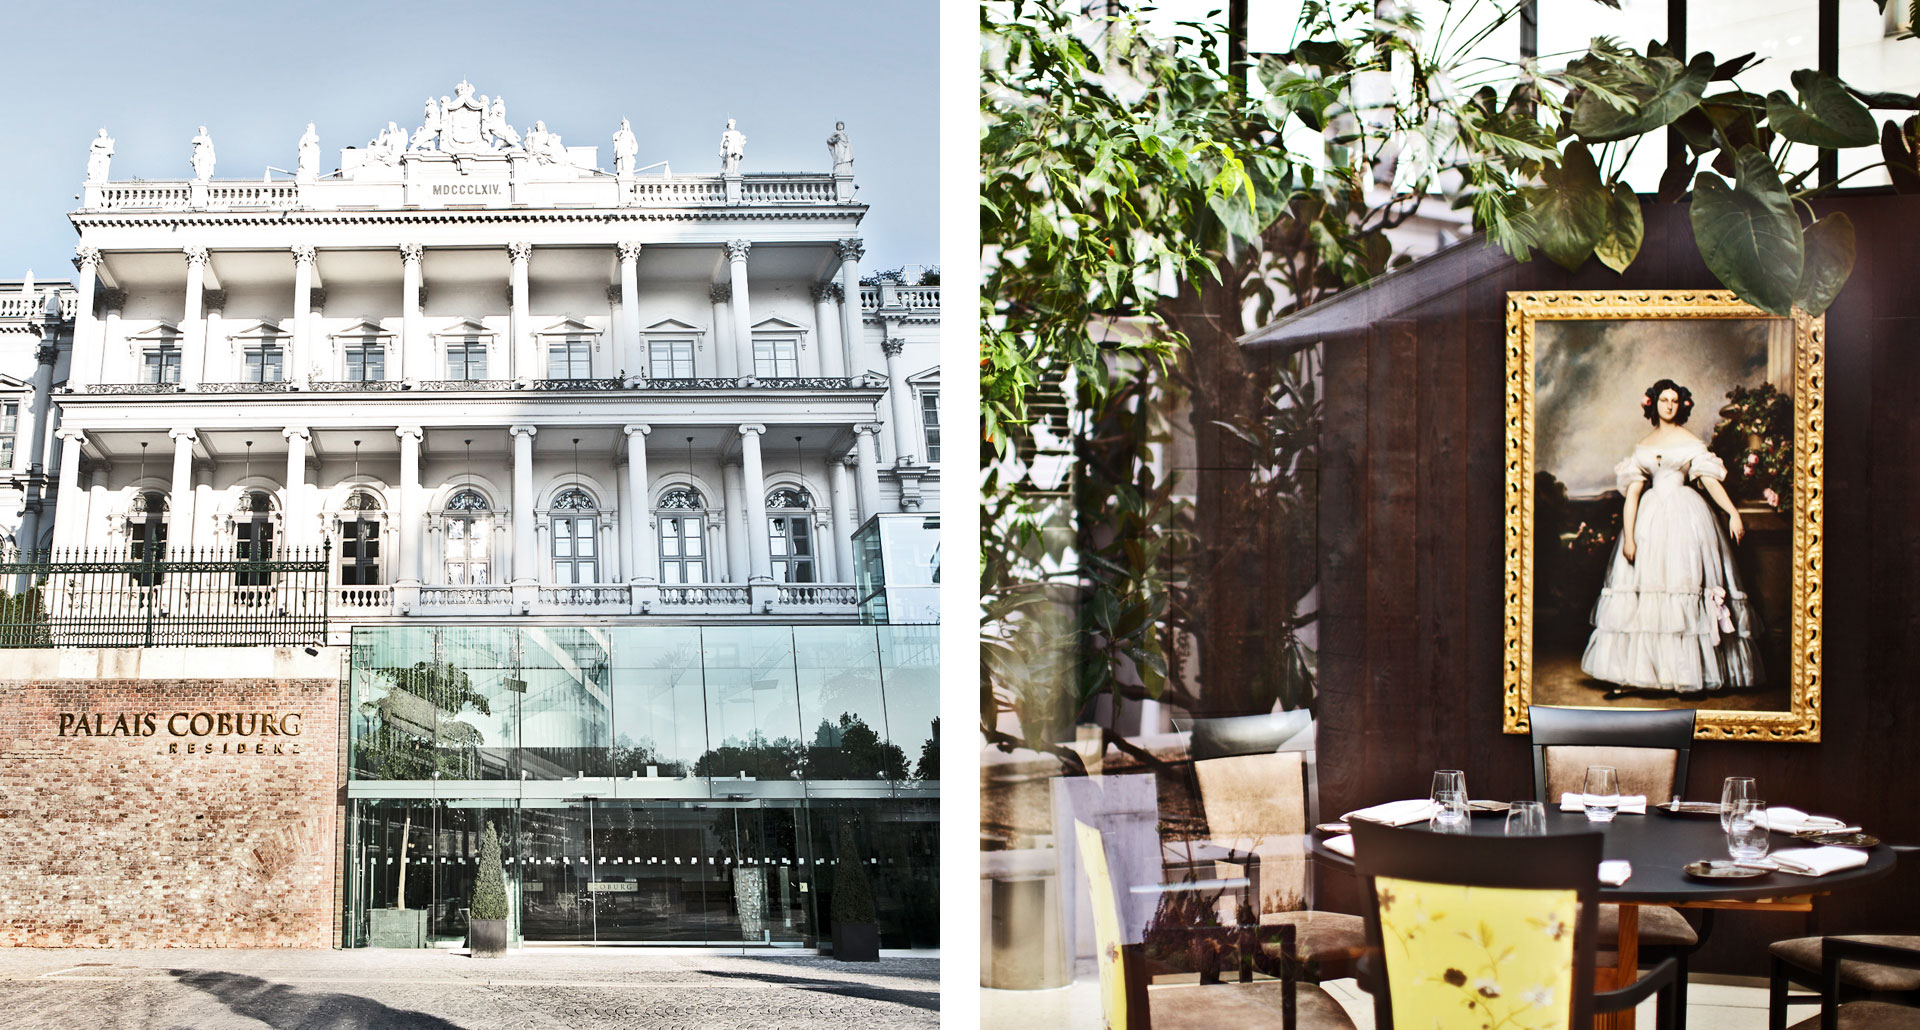 Palais Coburg - boutique hotel in Vienna